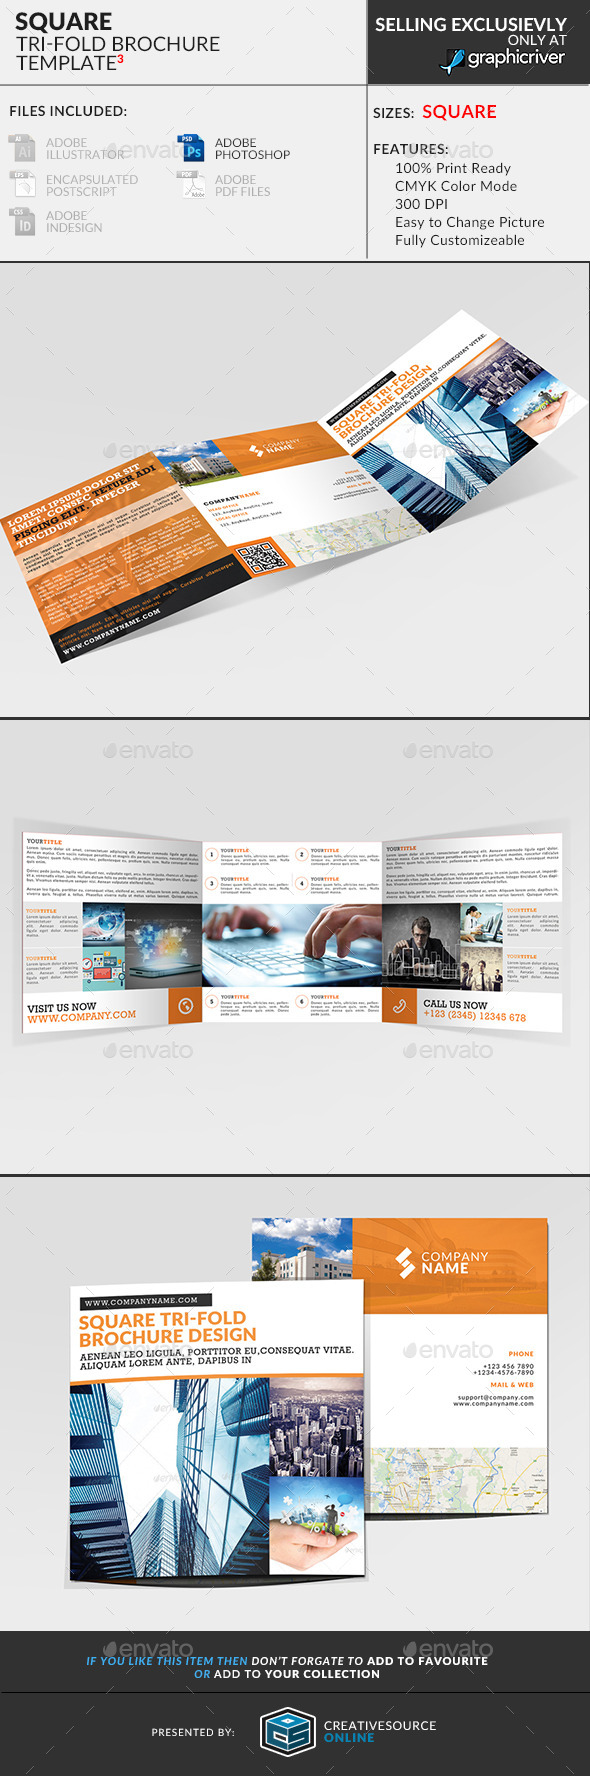 GraphicRiver Square Trifold Brochure 3 9443423